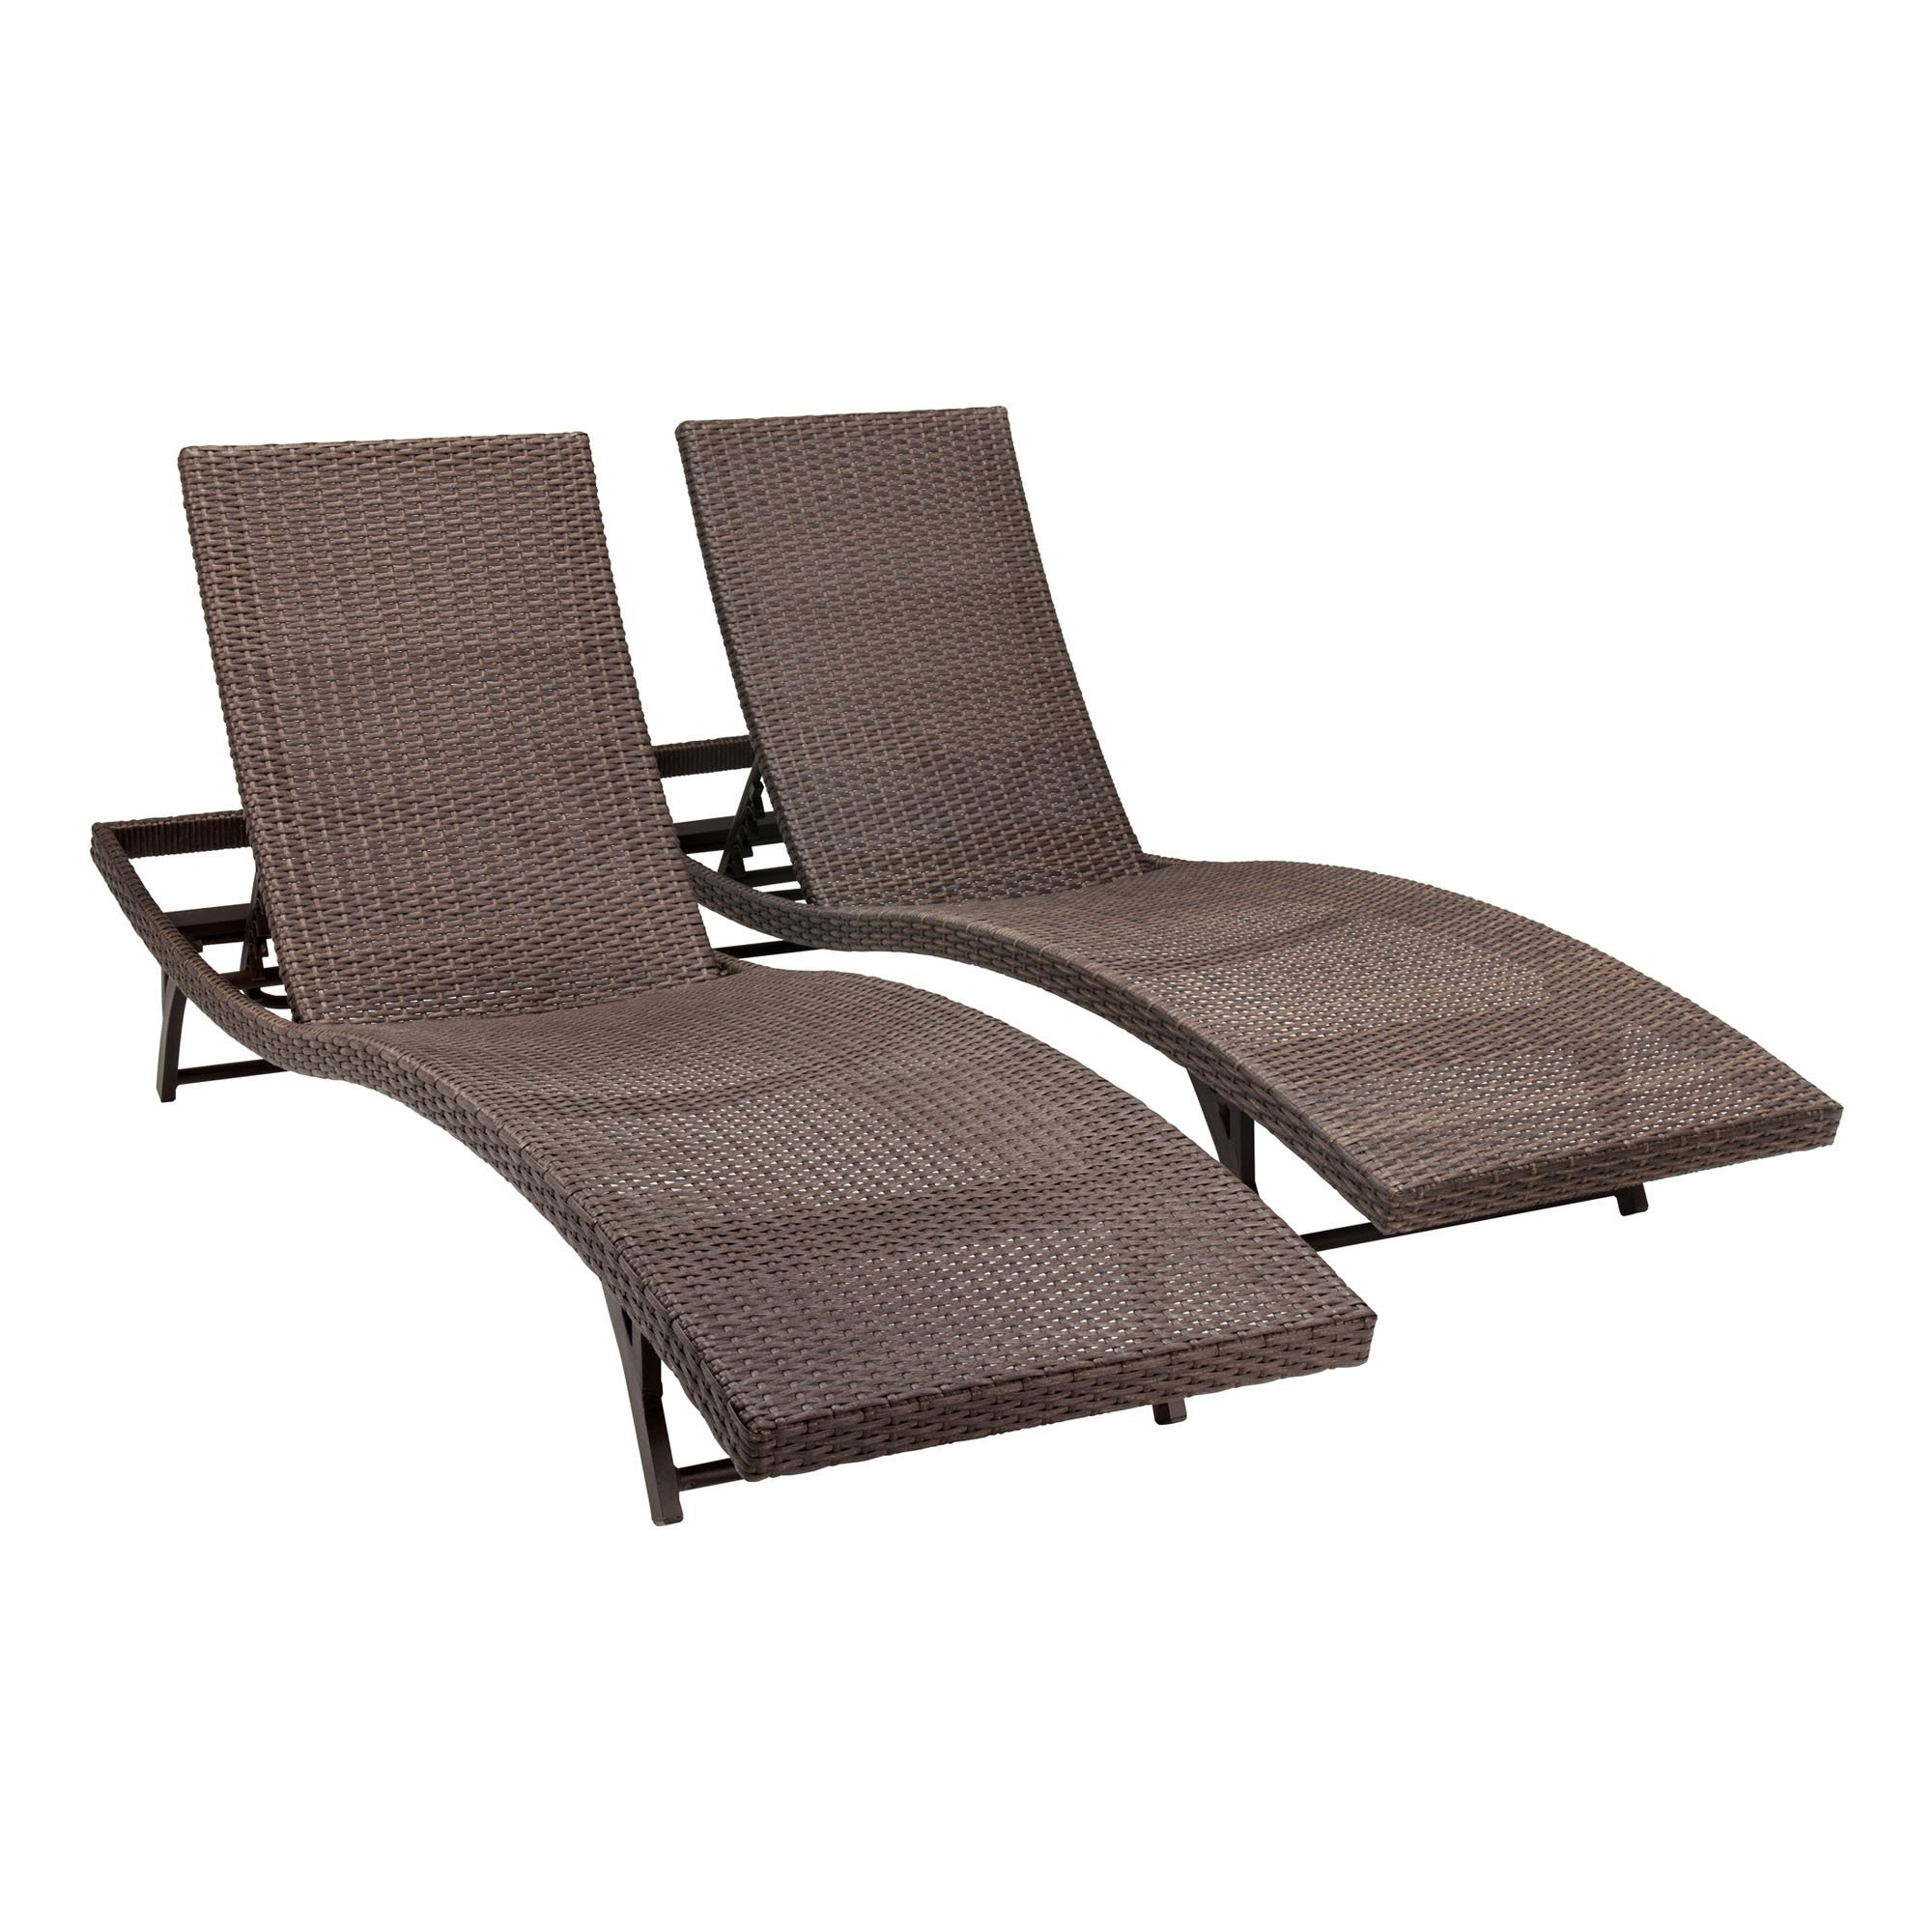 Outdoor : Jelly Lounge Chair Chaise Lounge Sofa Chaise Lounge Regarding Most Recently Released Metal Chaise Lounge Chairs (View 10 of 15)